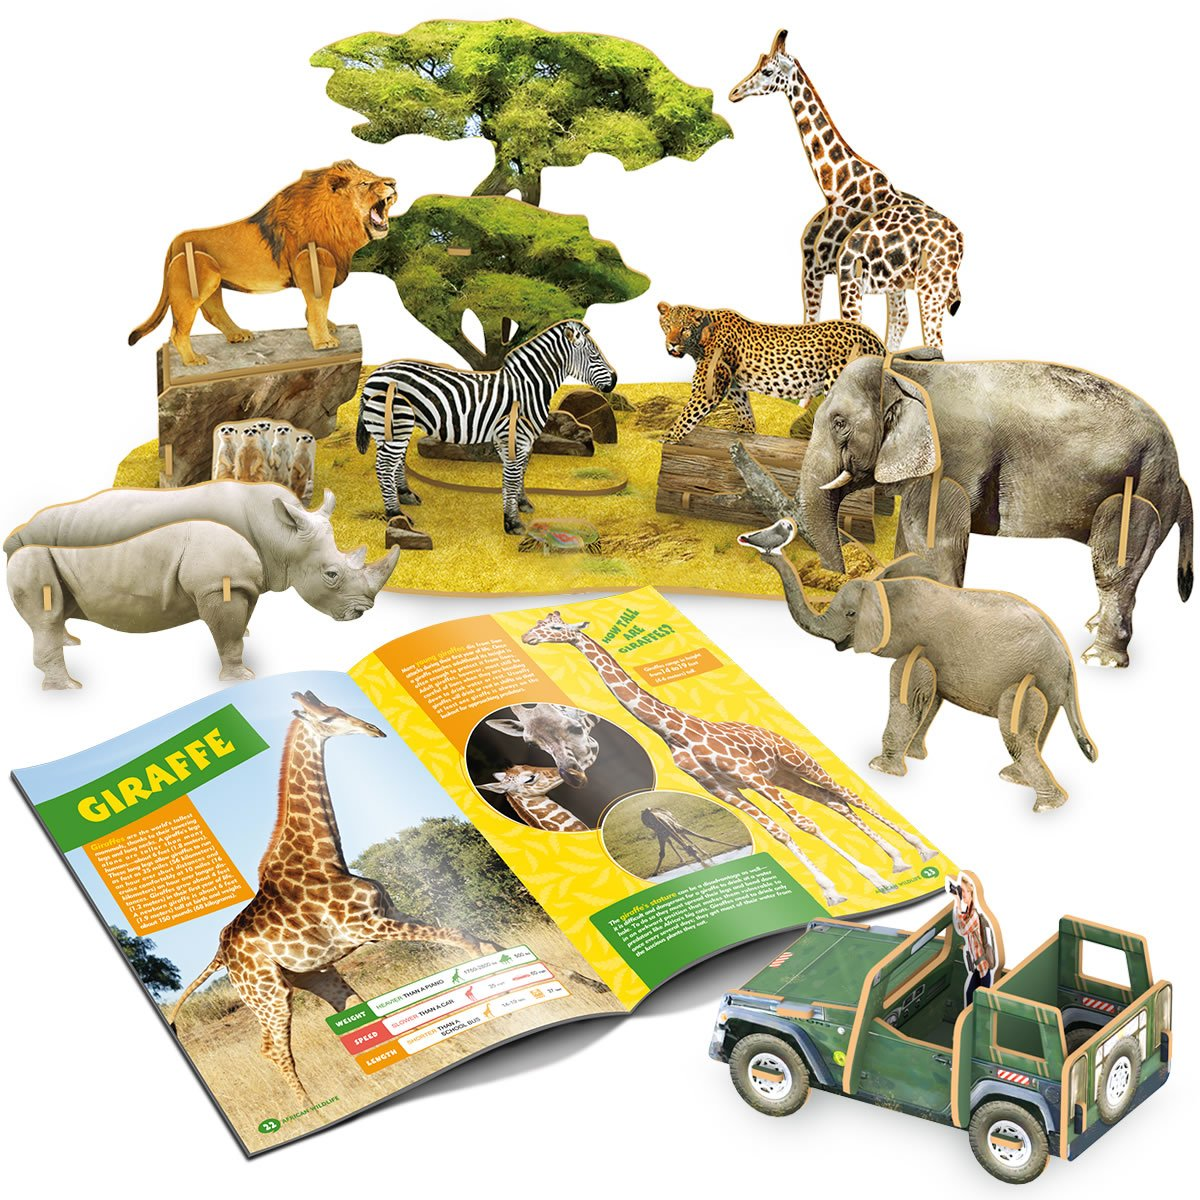 Cubicfun-National Geographic Animal Puzzles for Kids Educational Toys with Booklet,African Wildlife